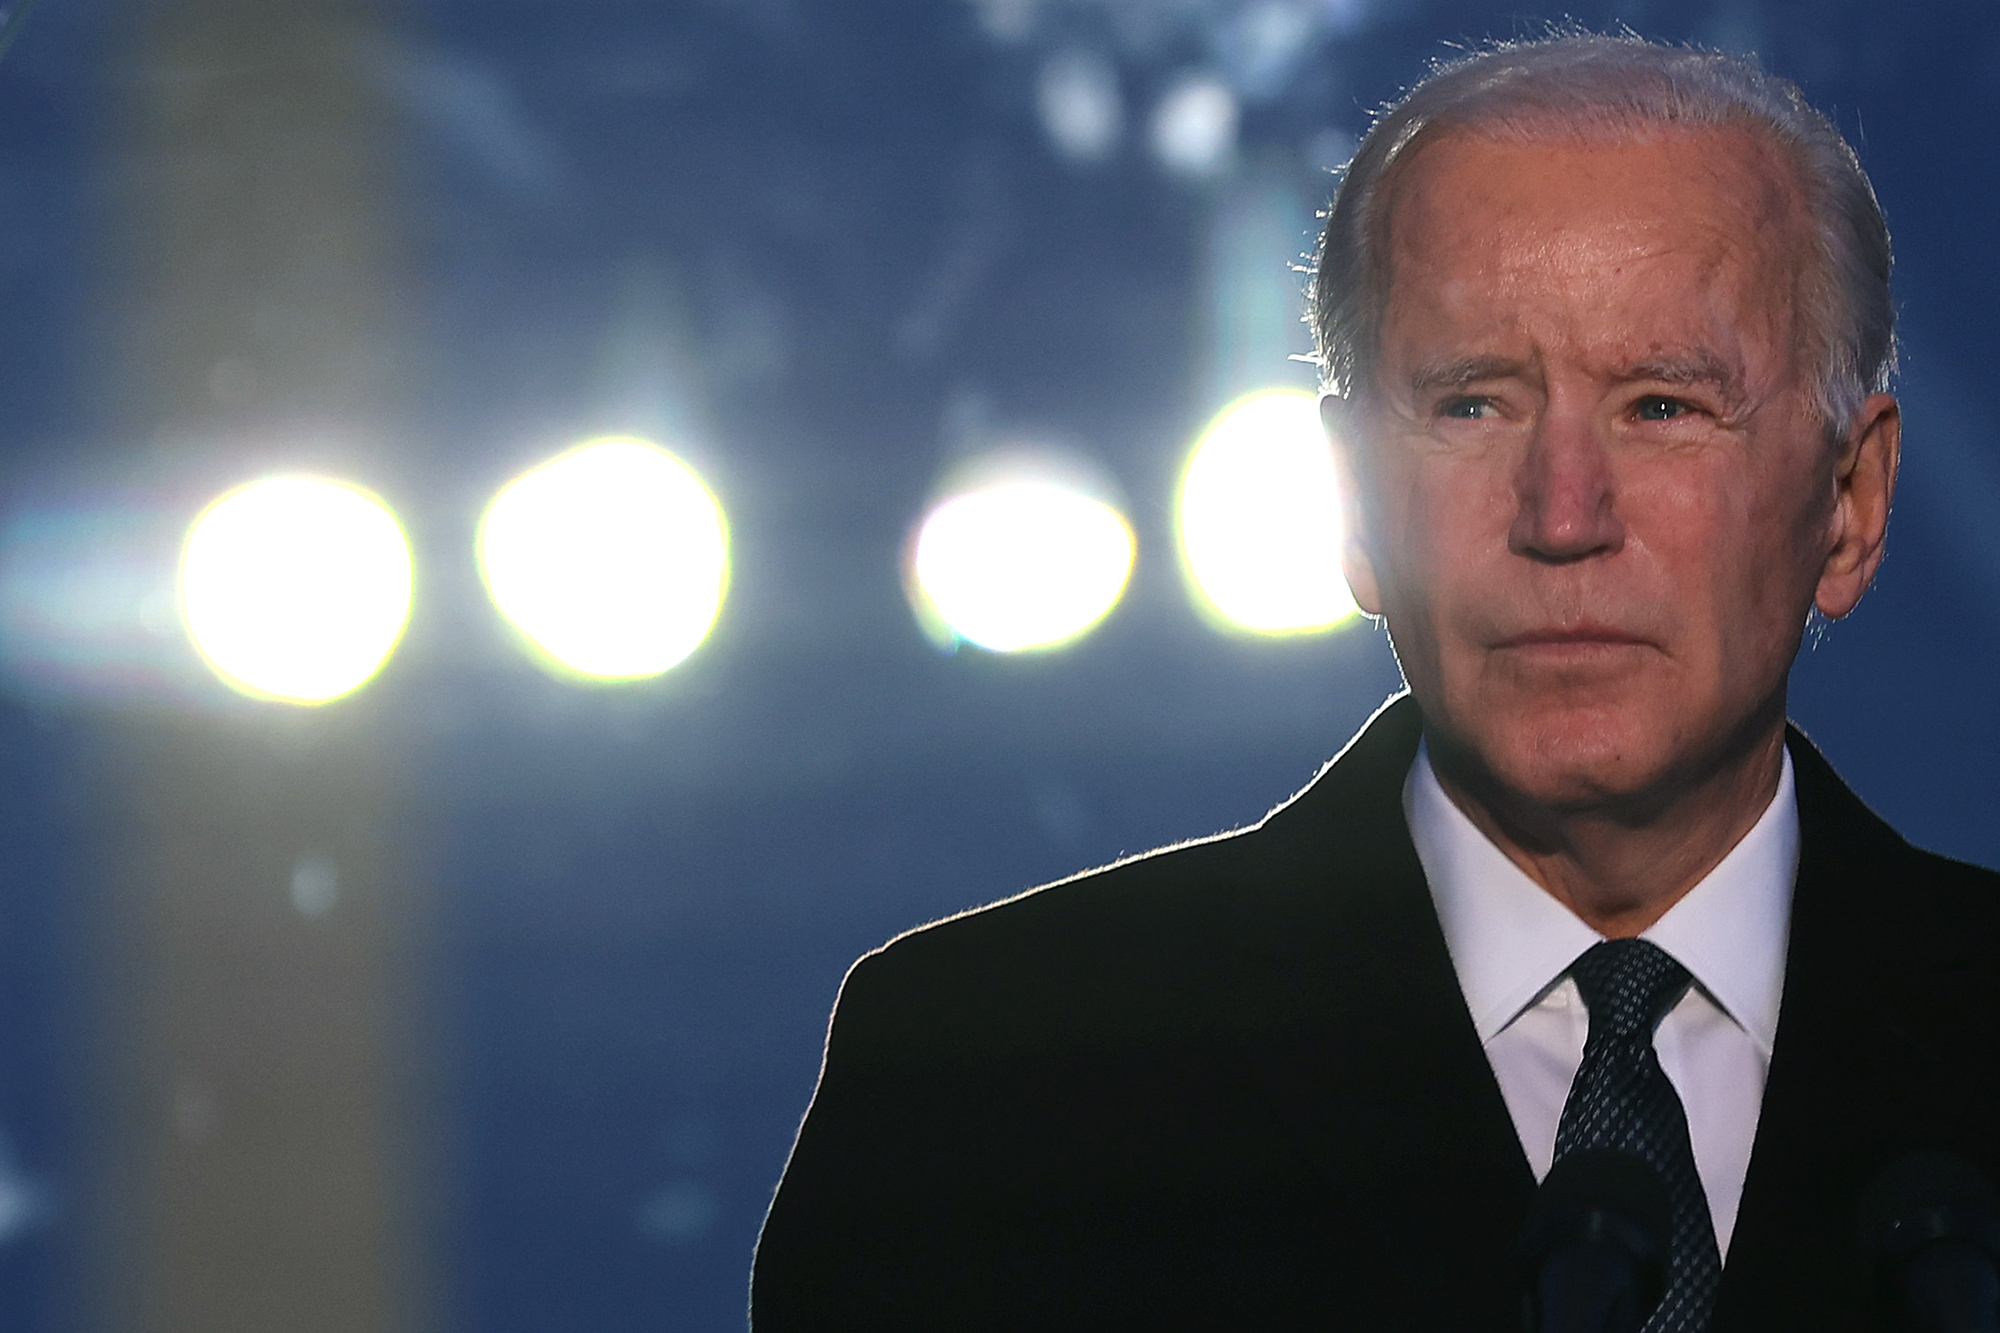 Biden to kick off presidency by signing 17 executive actions